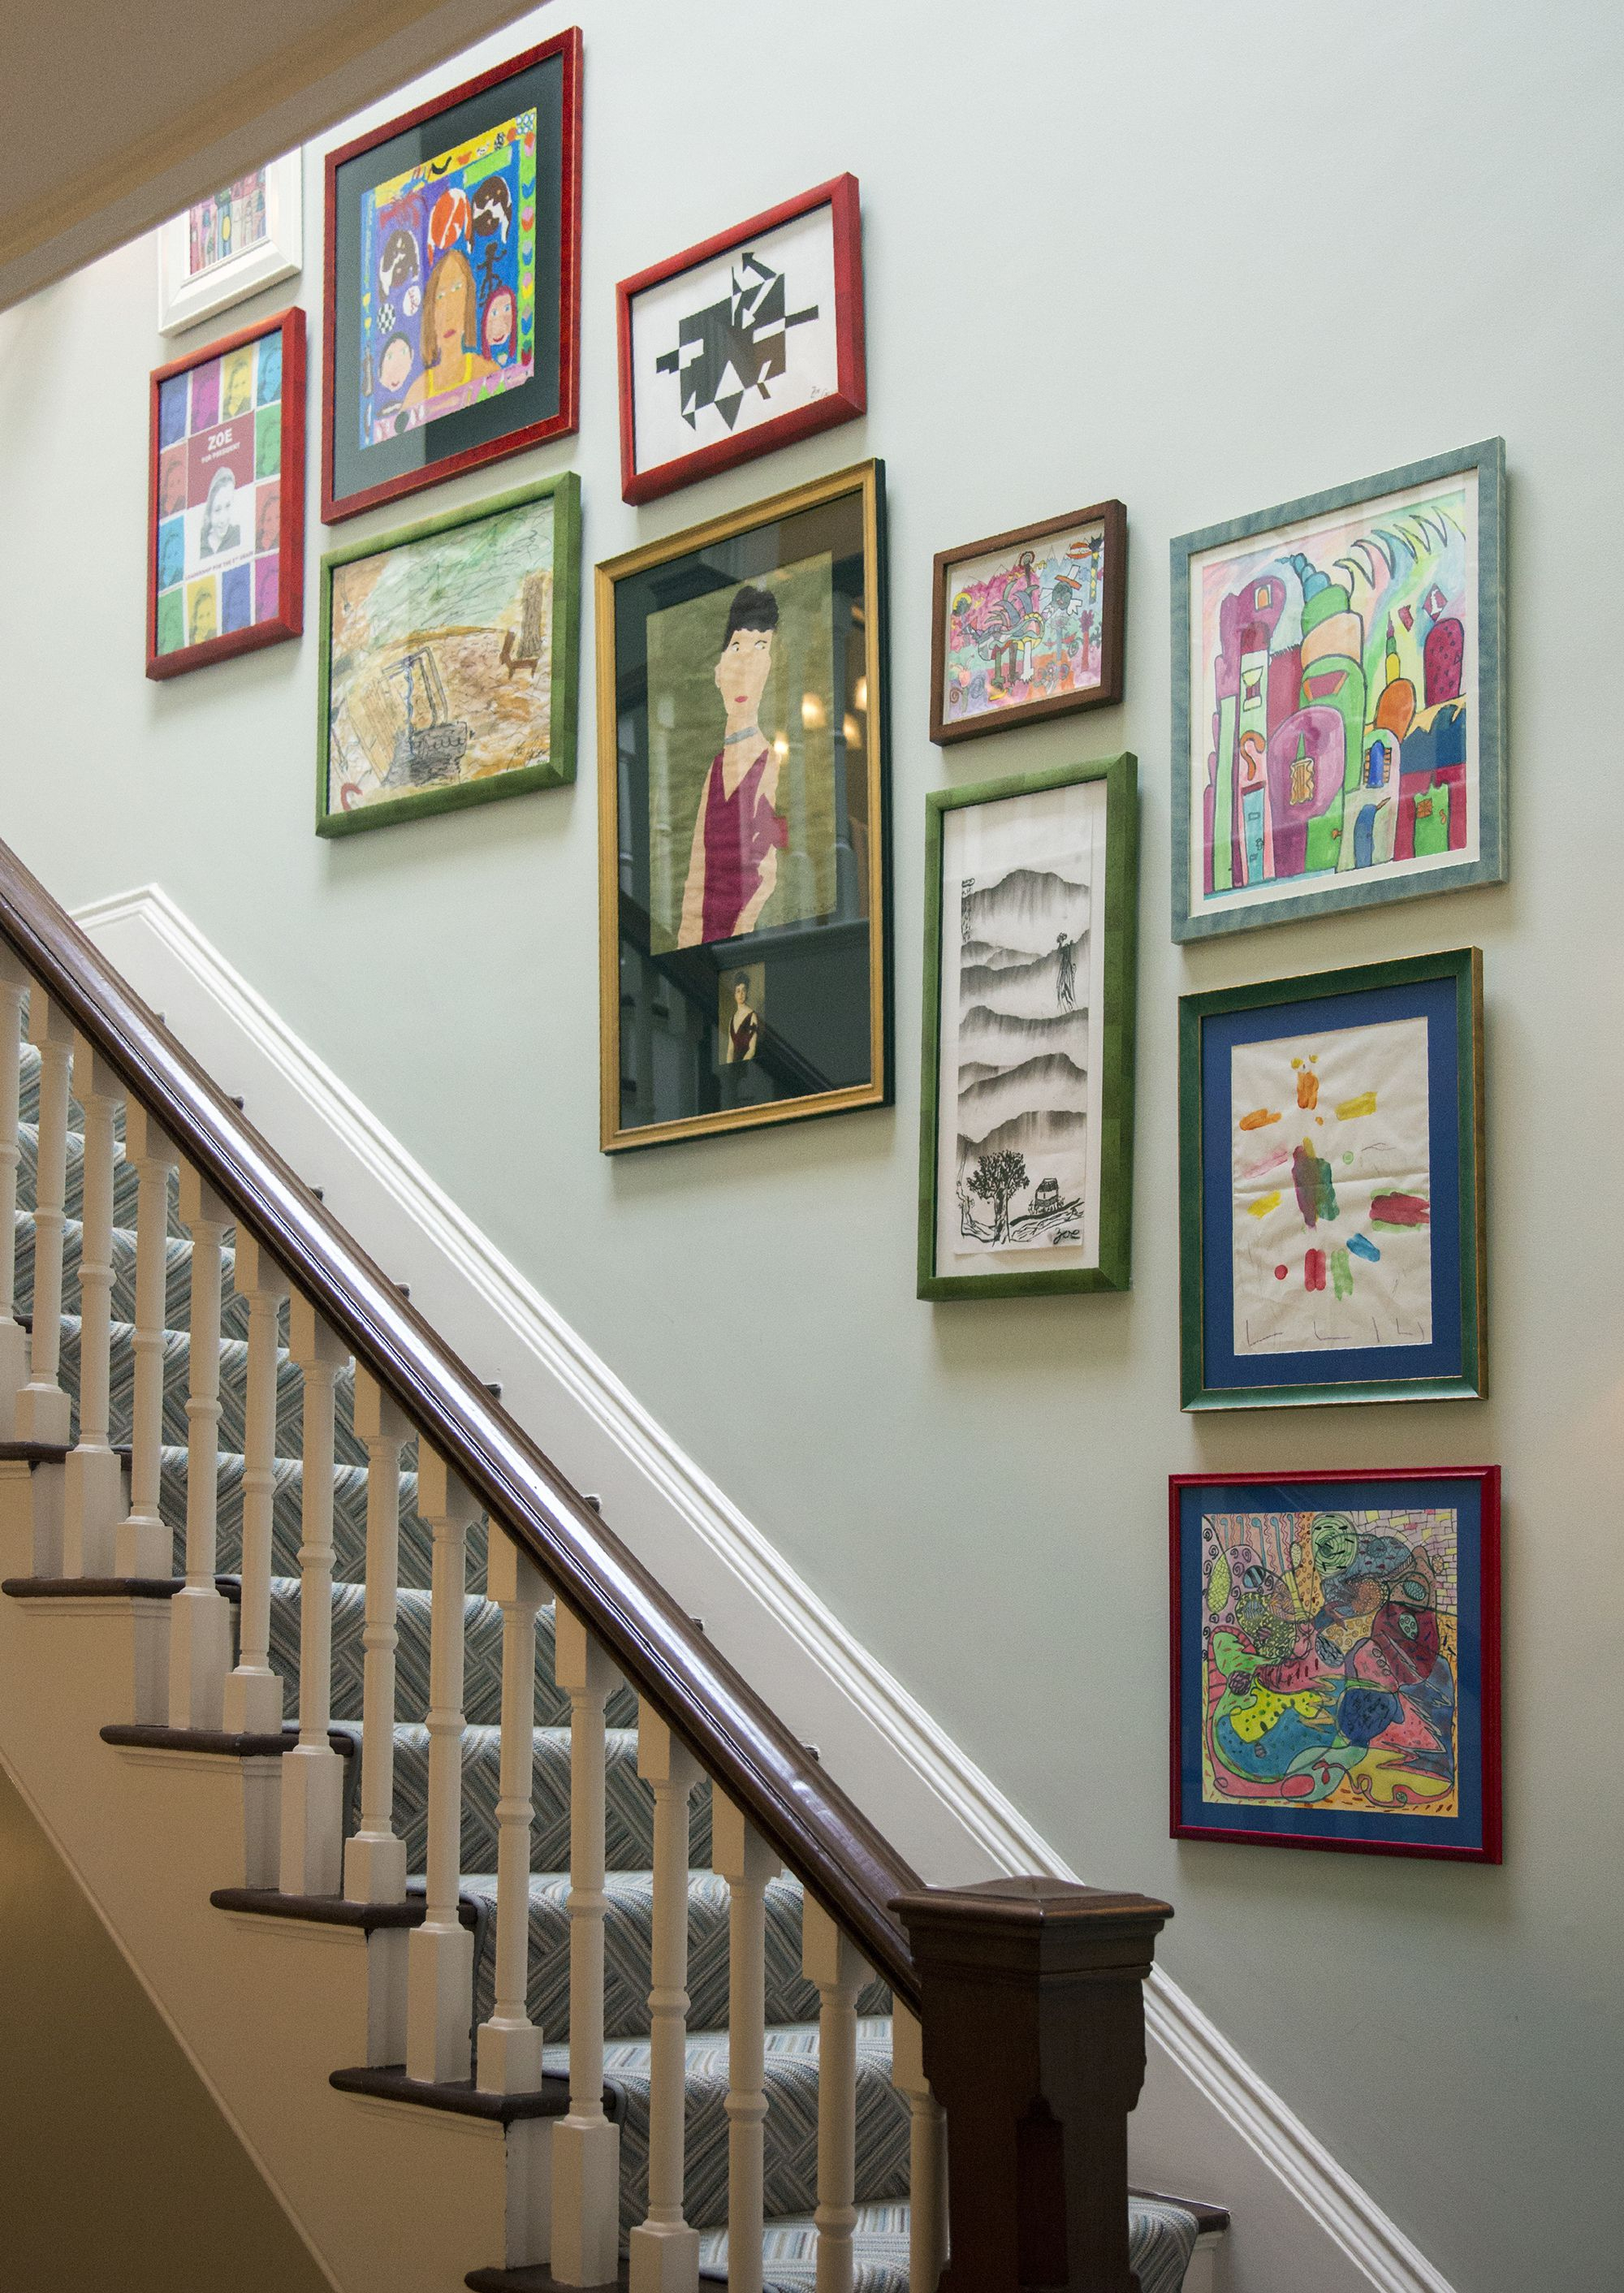 27 Stylish Staircase Decorating Ideas – How To Decorate Stairways With Regard To 2019 Landing Art Wall Decor (Gallery 19 of 20)